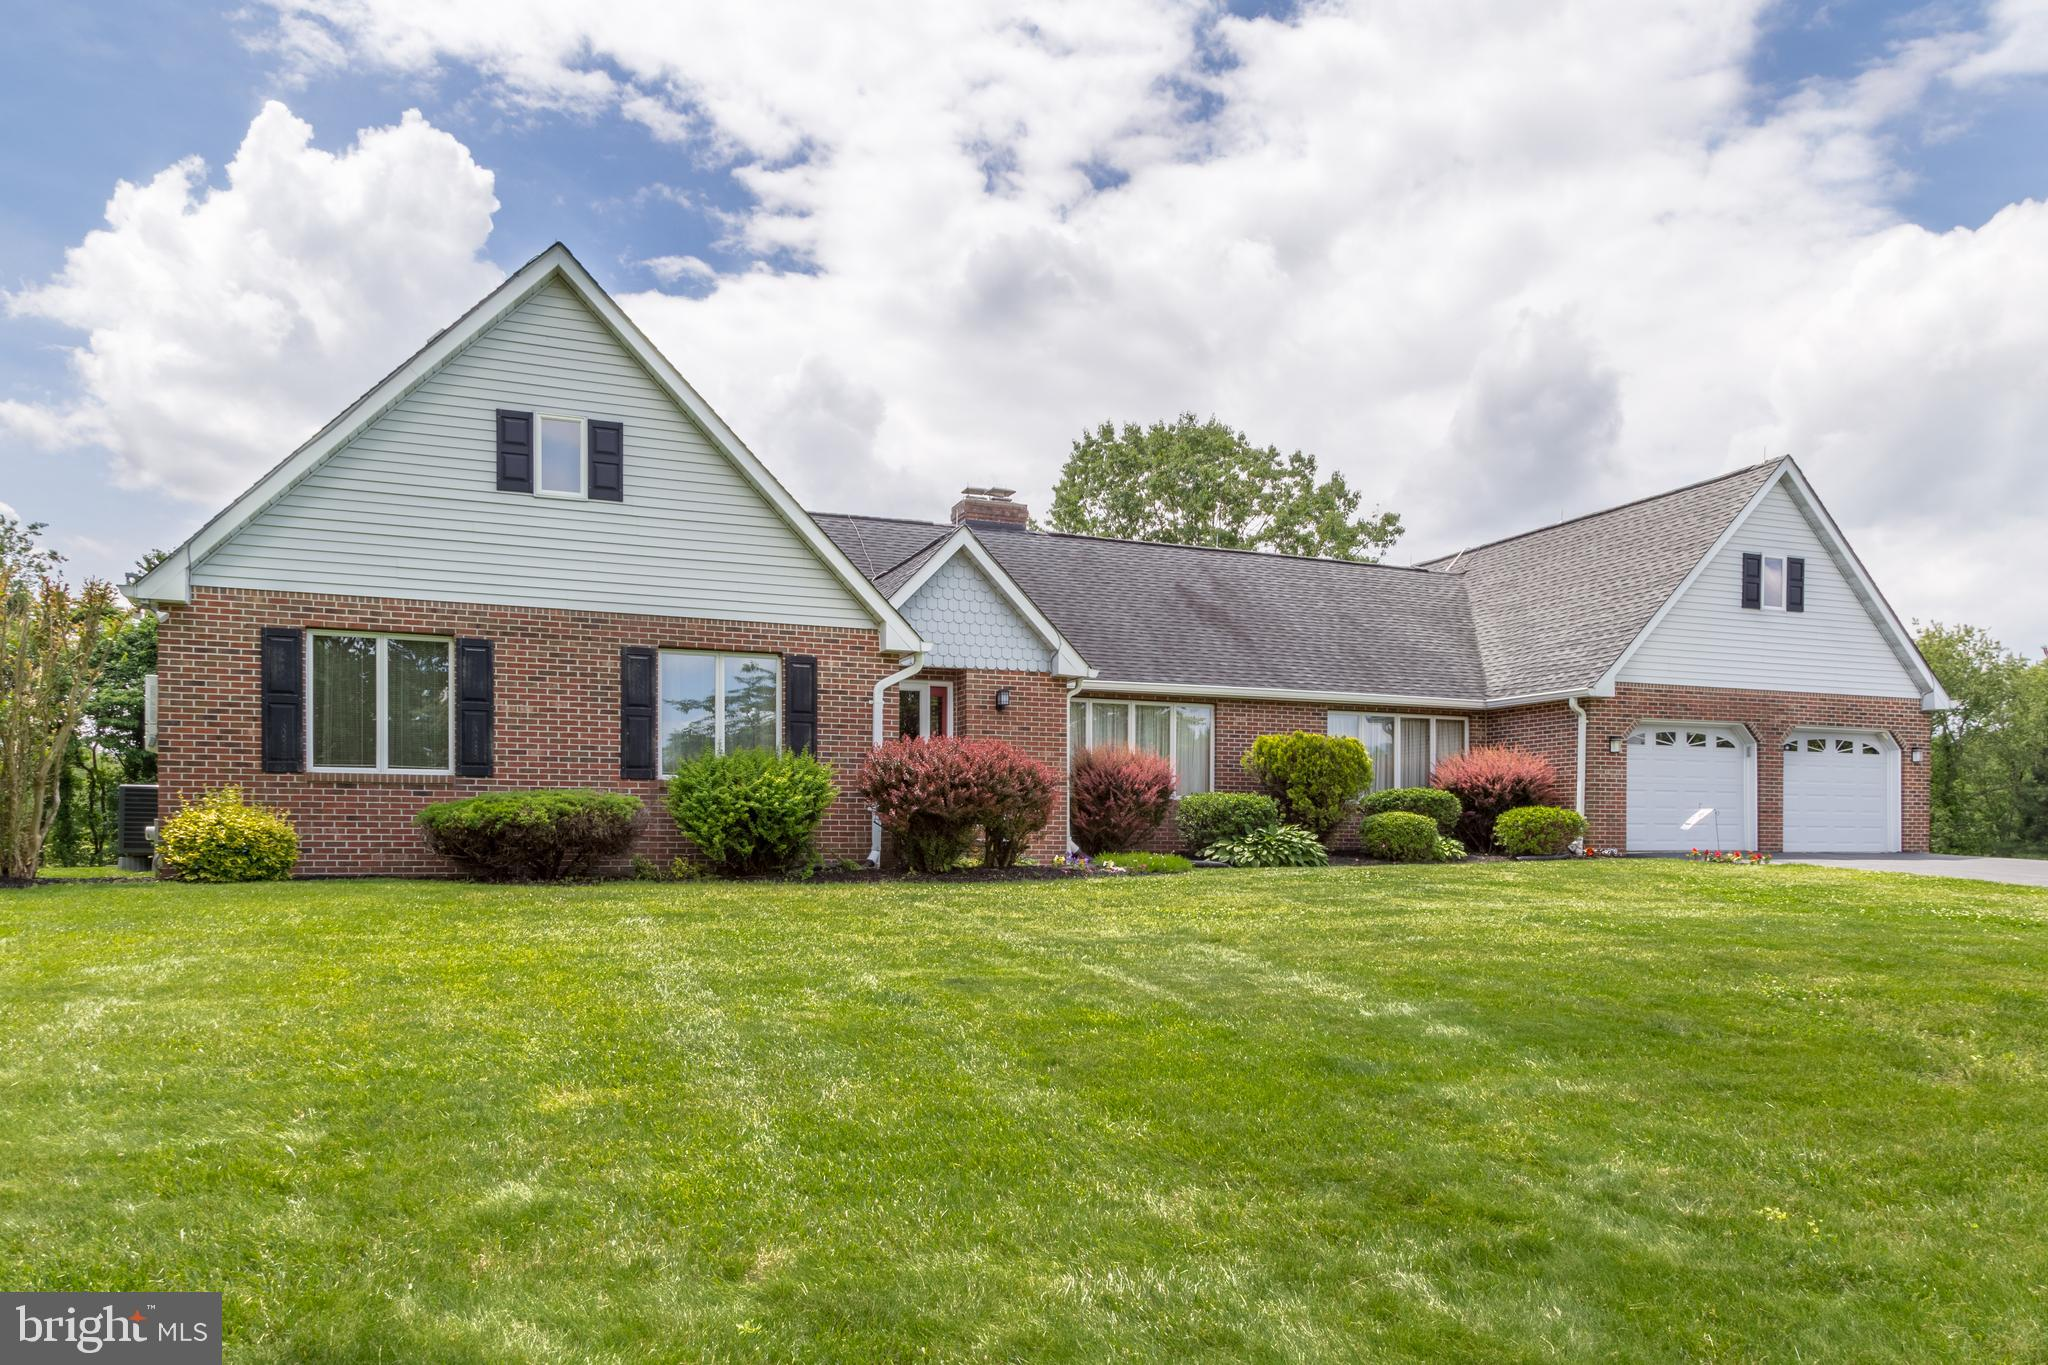 3201 COON CLUB ROAD, HAMPSTEAD, MD 21074